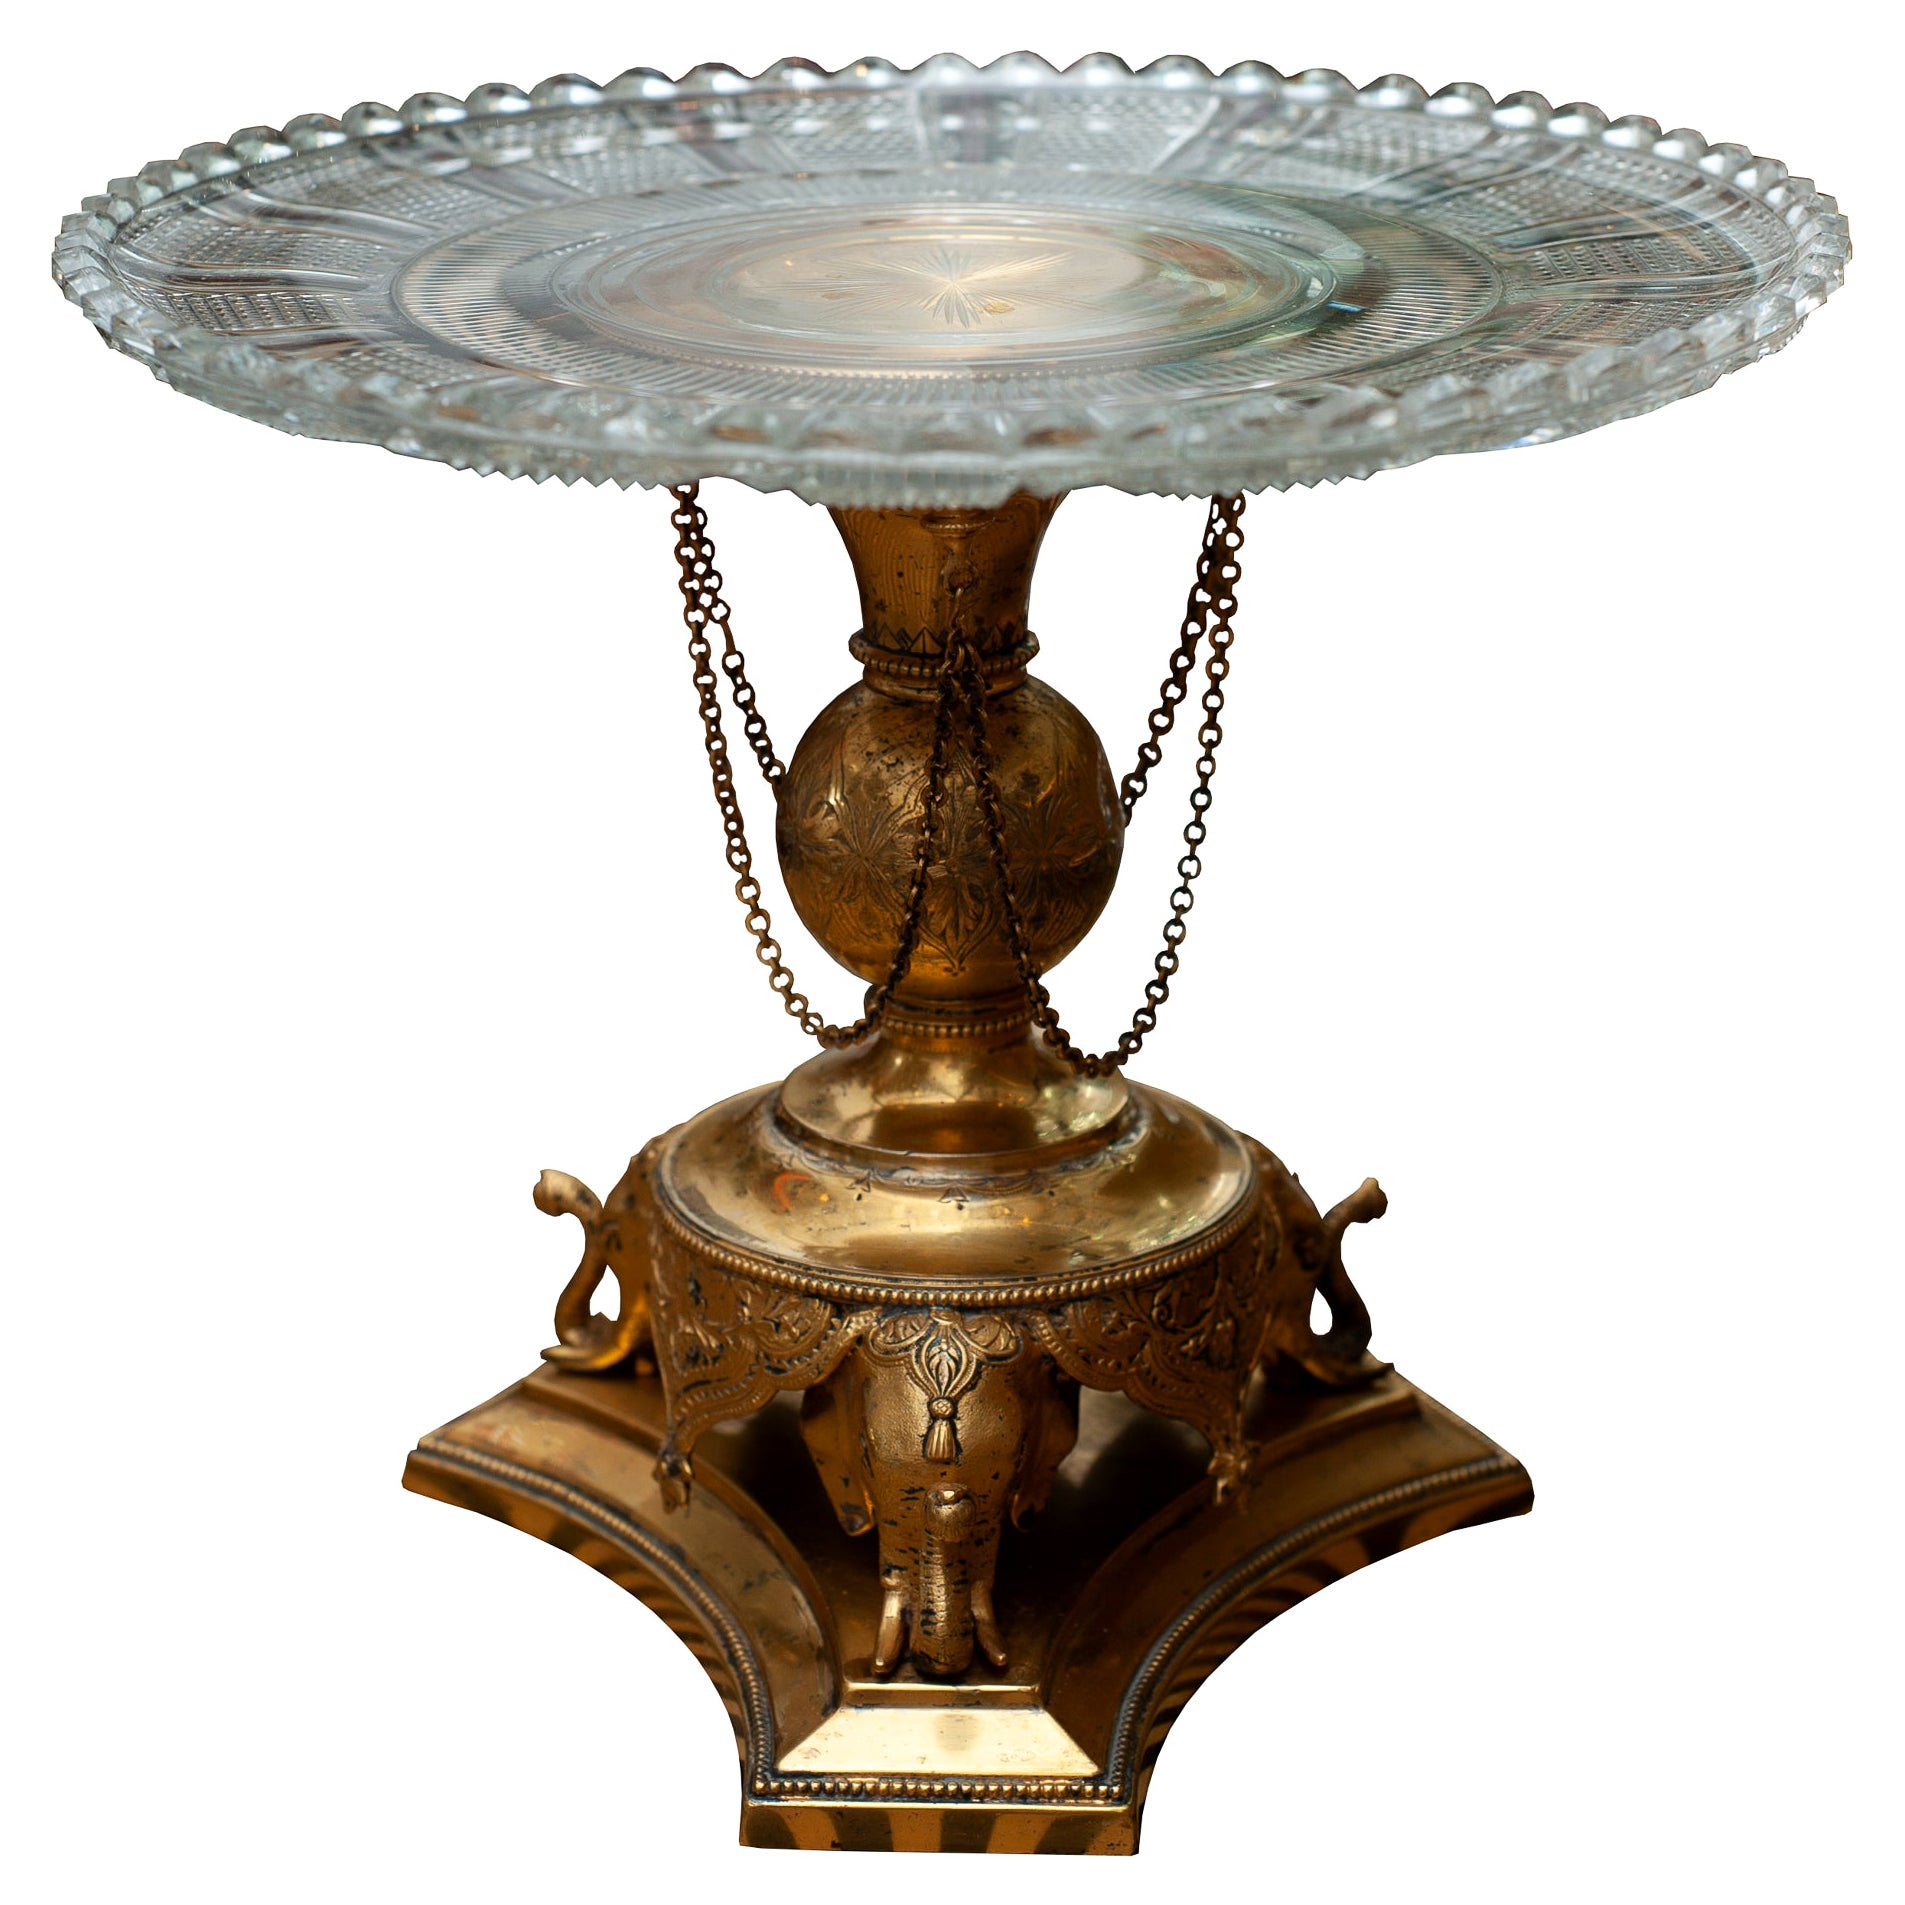 Antique English Cut Crystal and Bronze Tazza / Compote / Dish